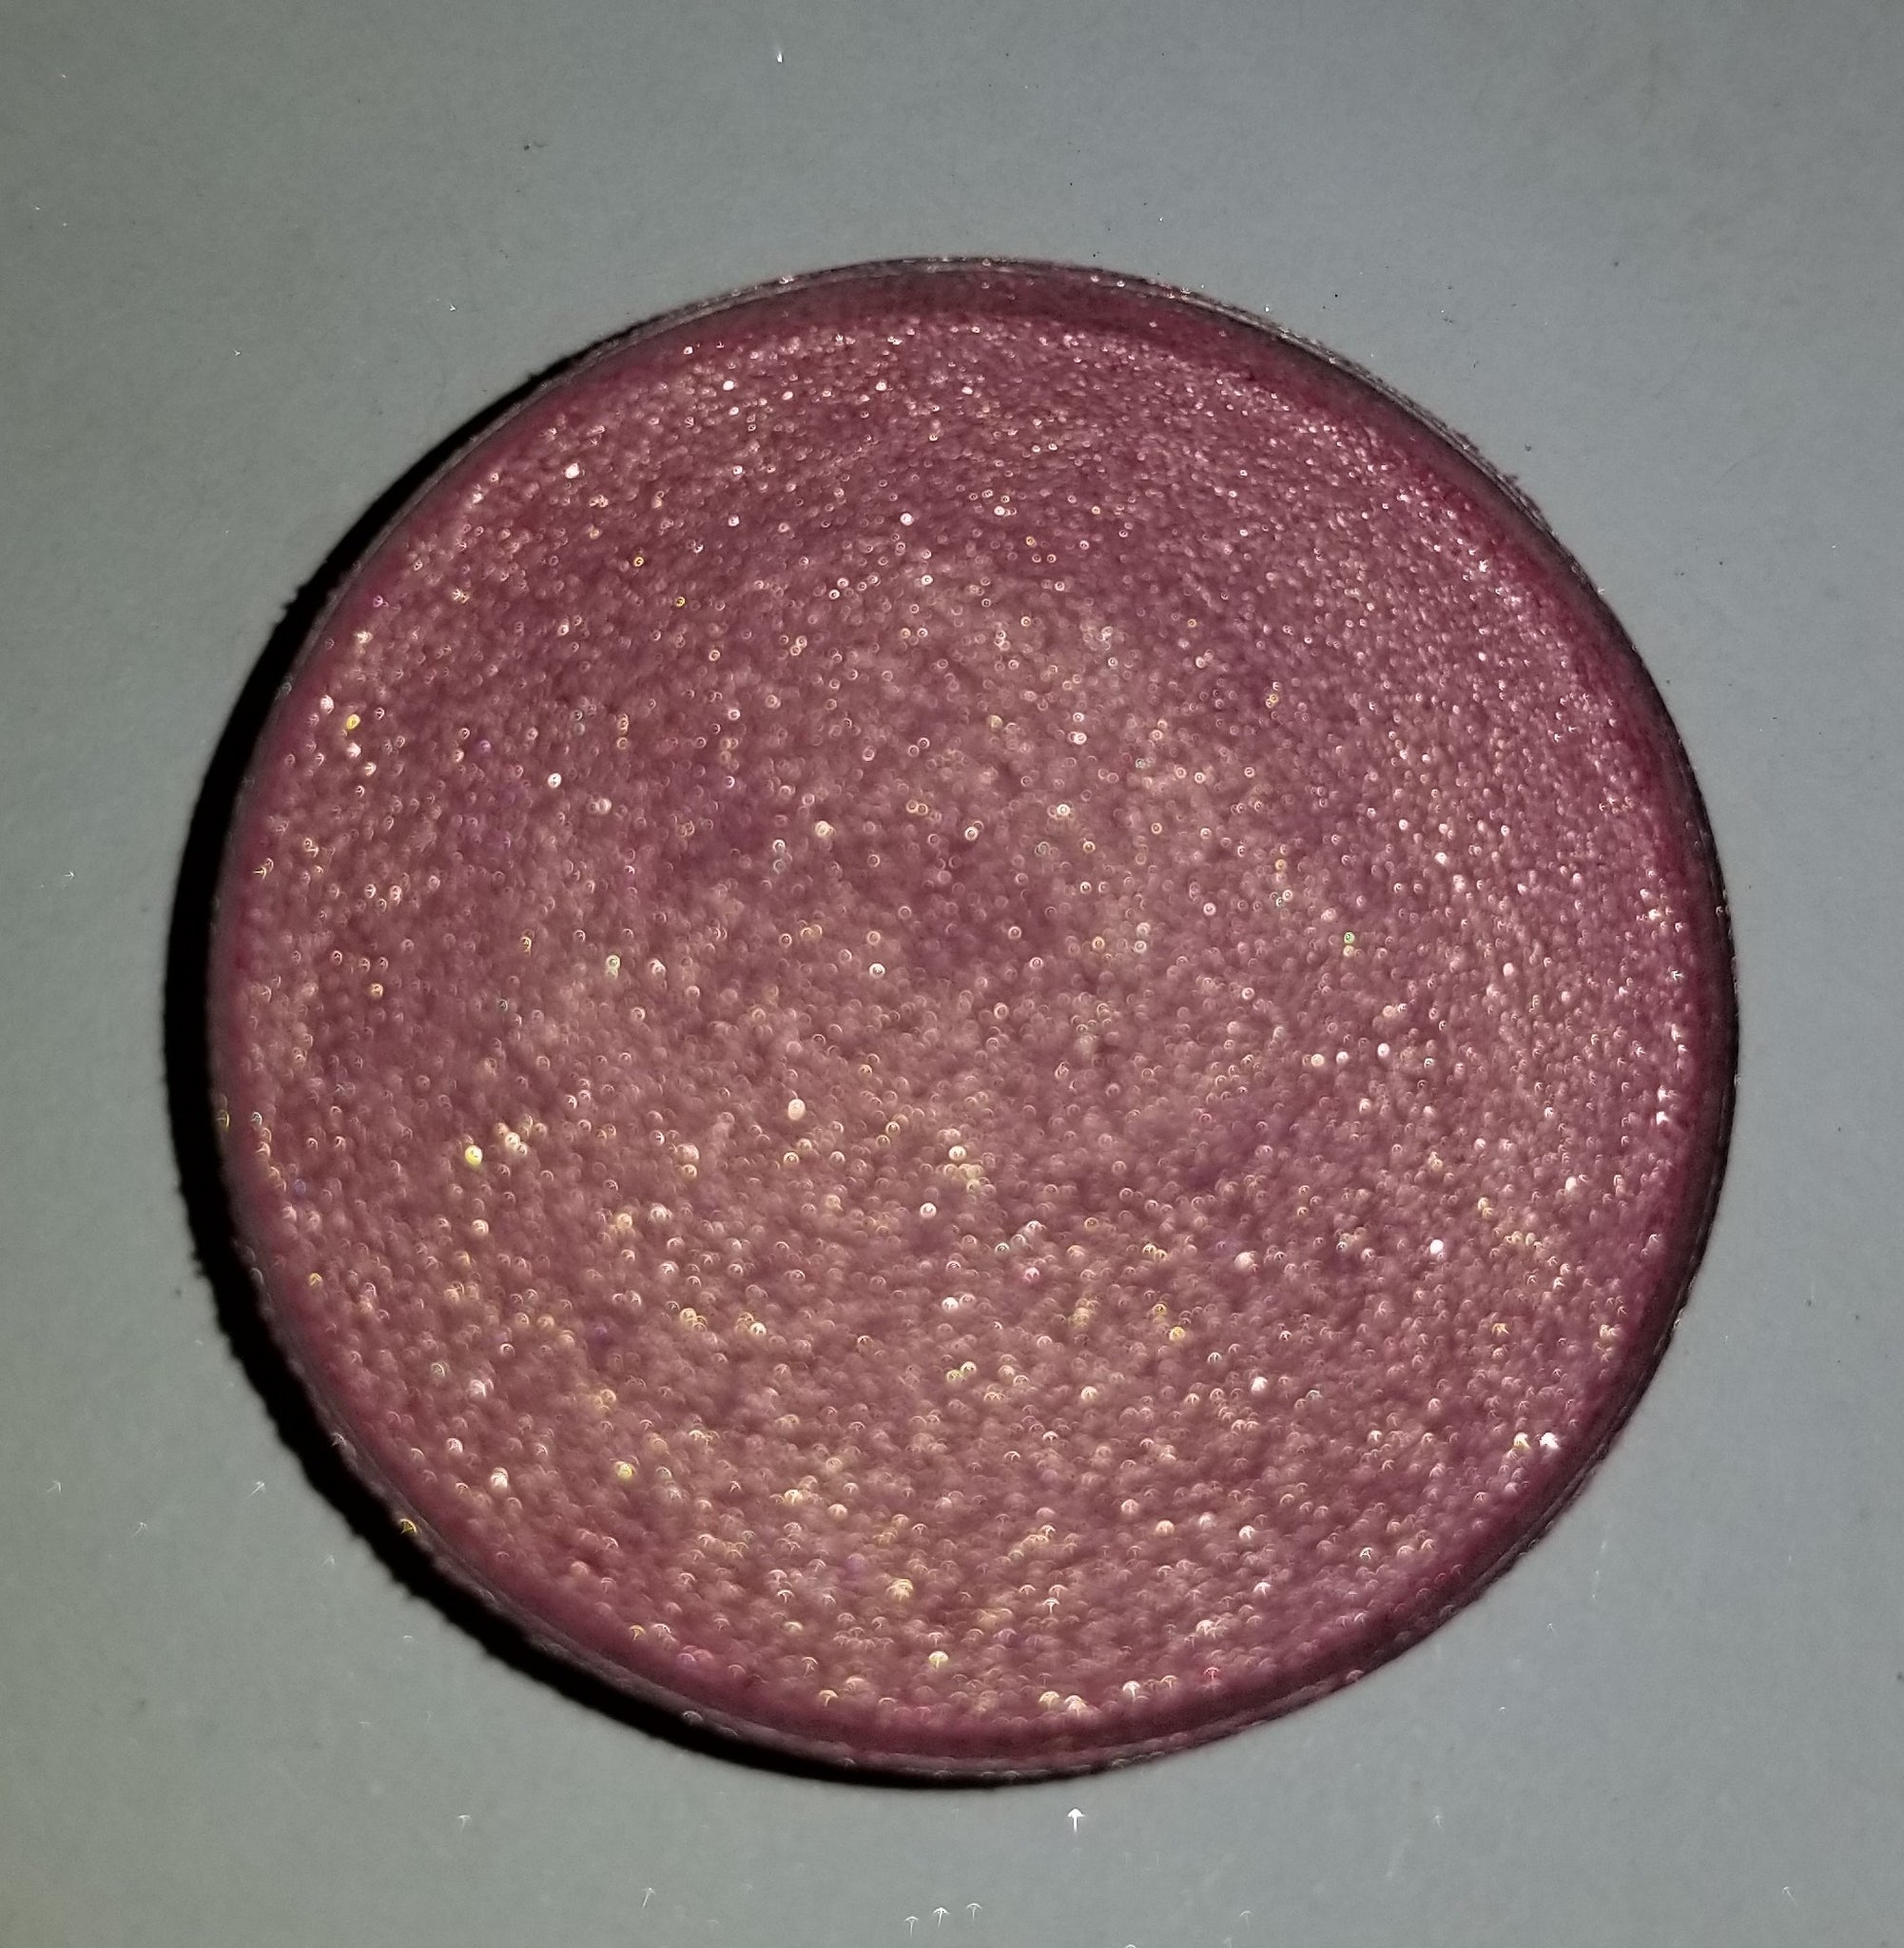 Limited Edition, The Plastics Collection - You Can't Sit With Us Pressed Eyeshadow - Shade Beauty